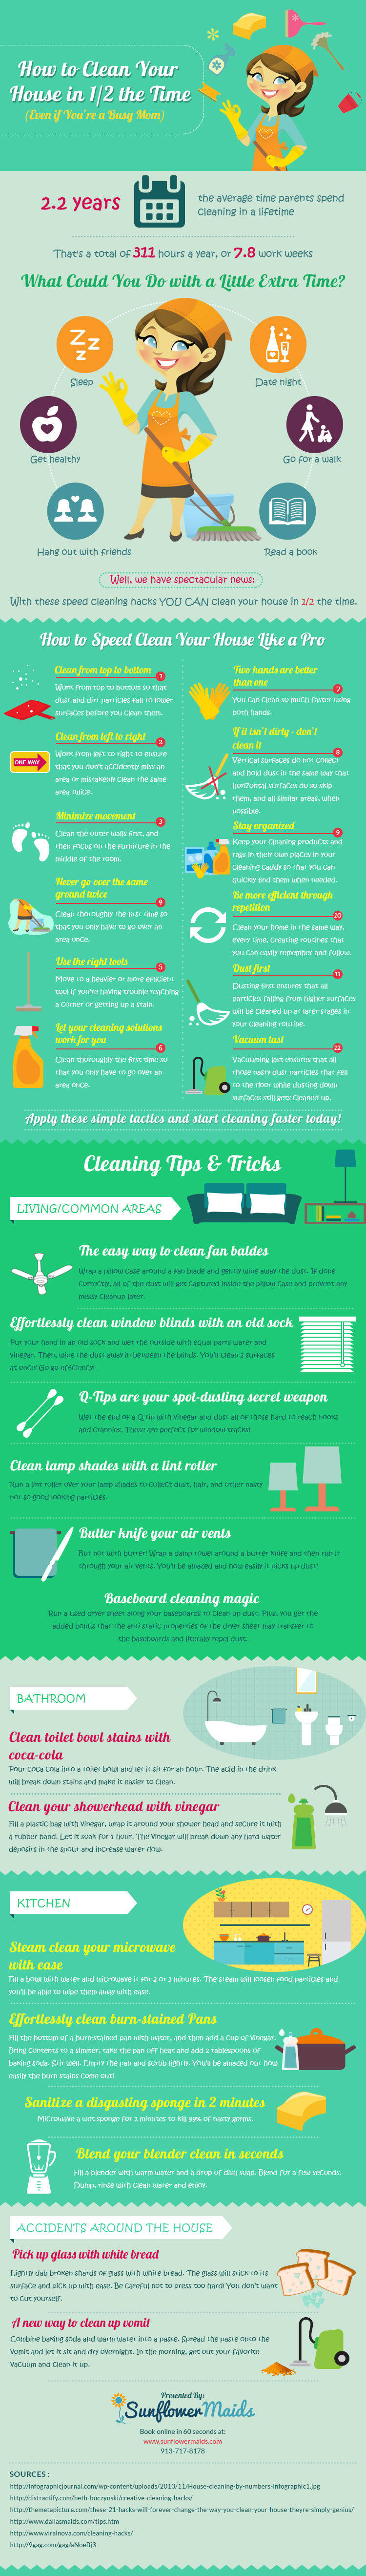 How To Clean Your House how to clean your house in half the time | daily infographic